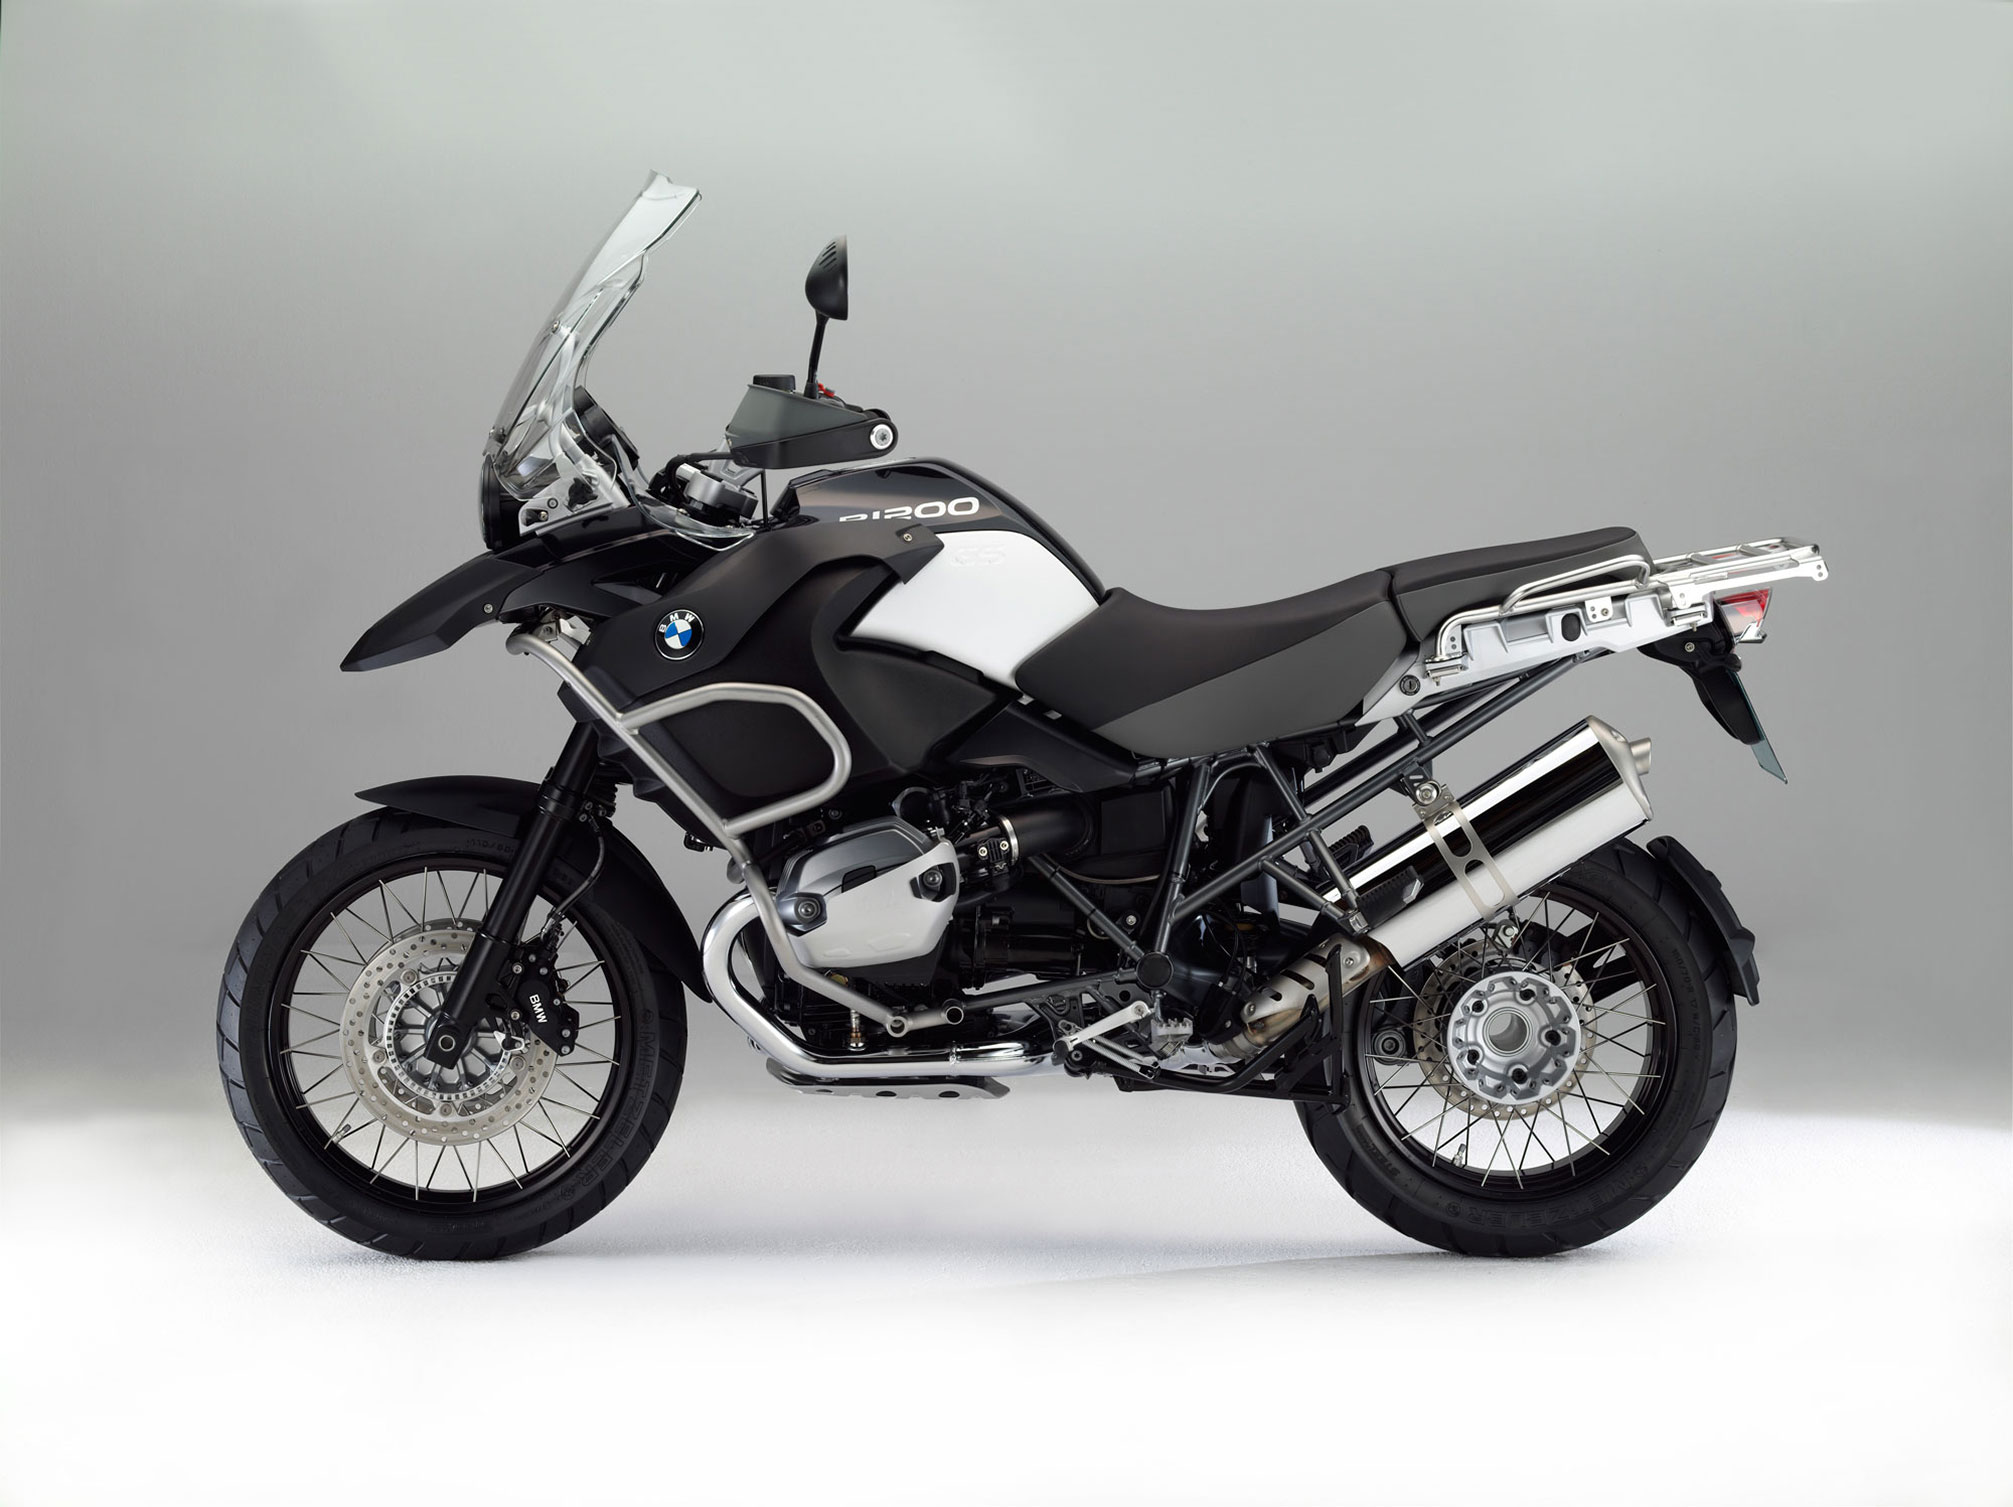 BMW R1200GS Adventure Triple Black 2013 images #8619